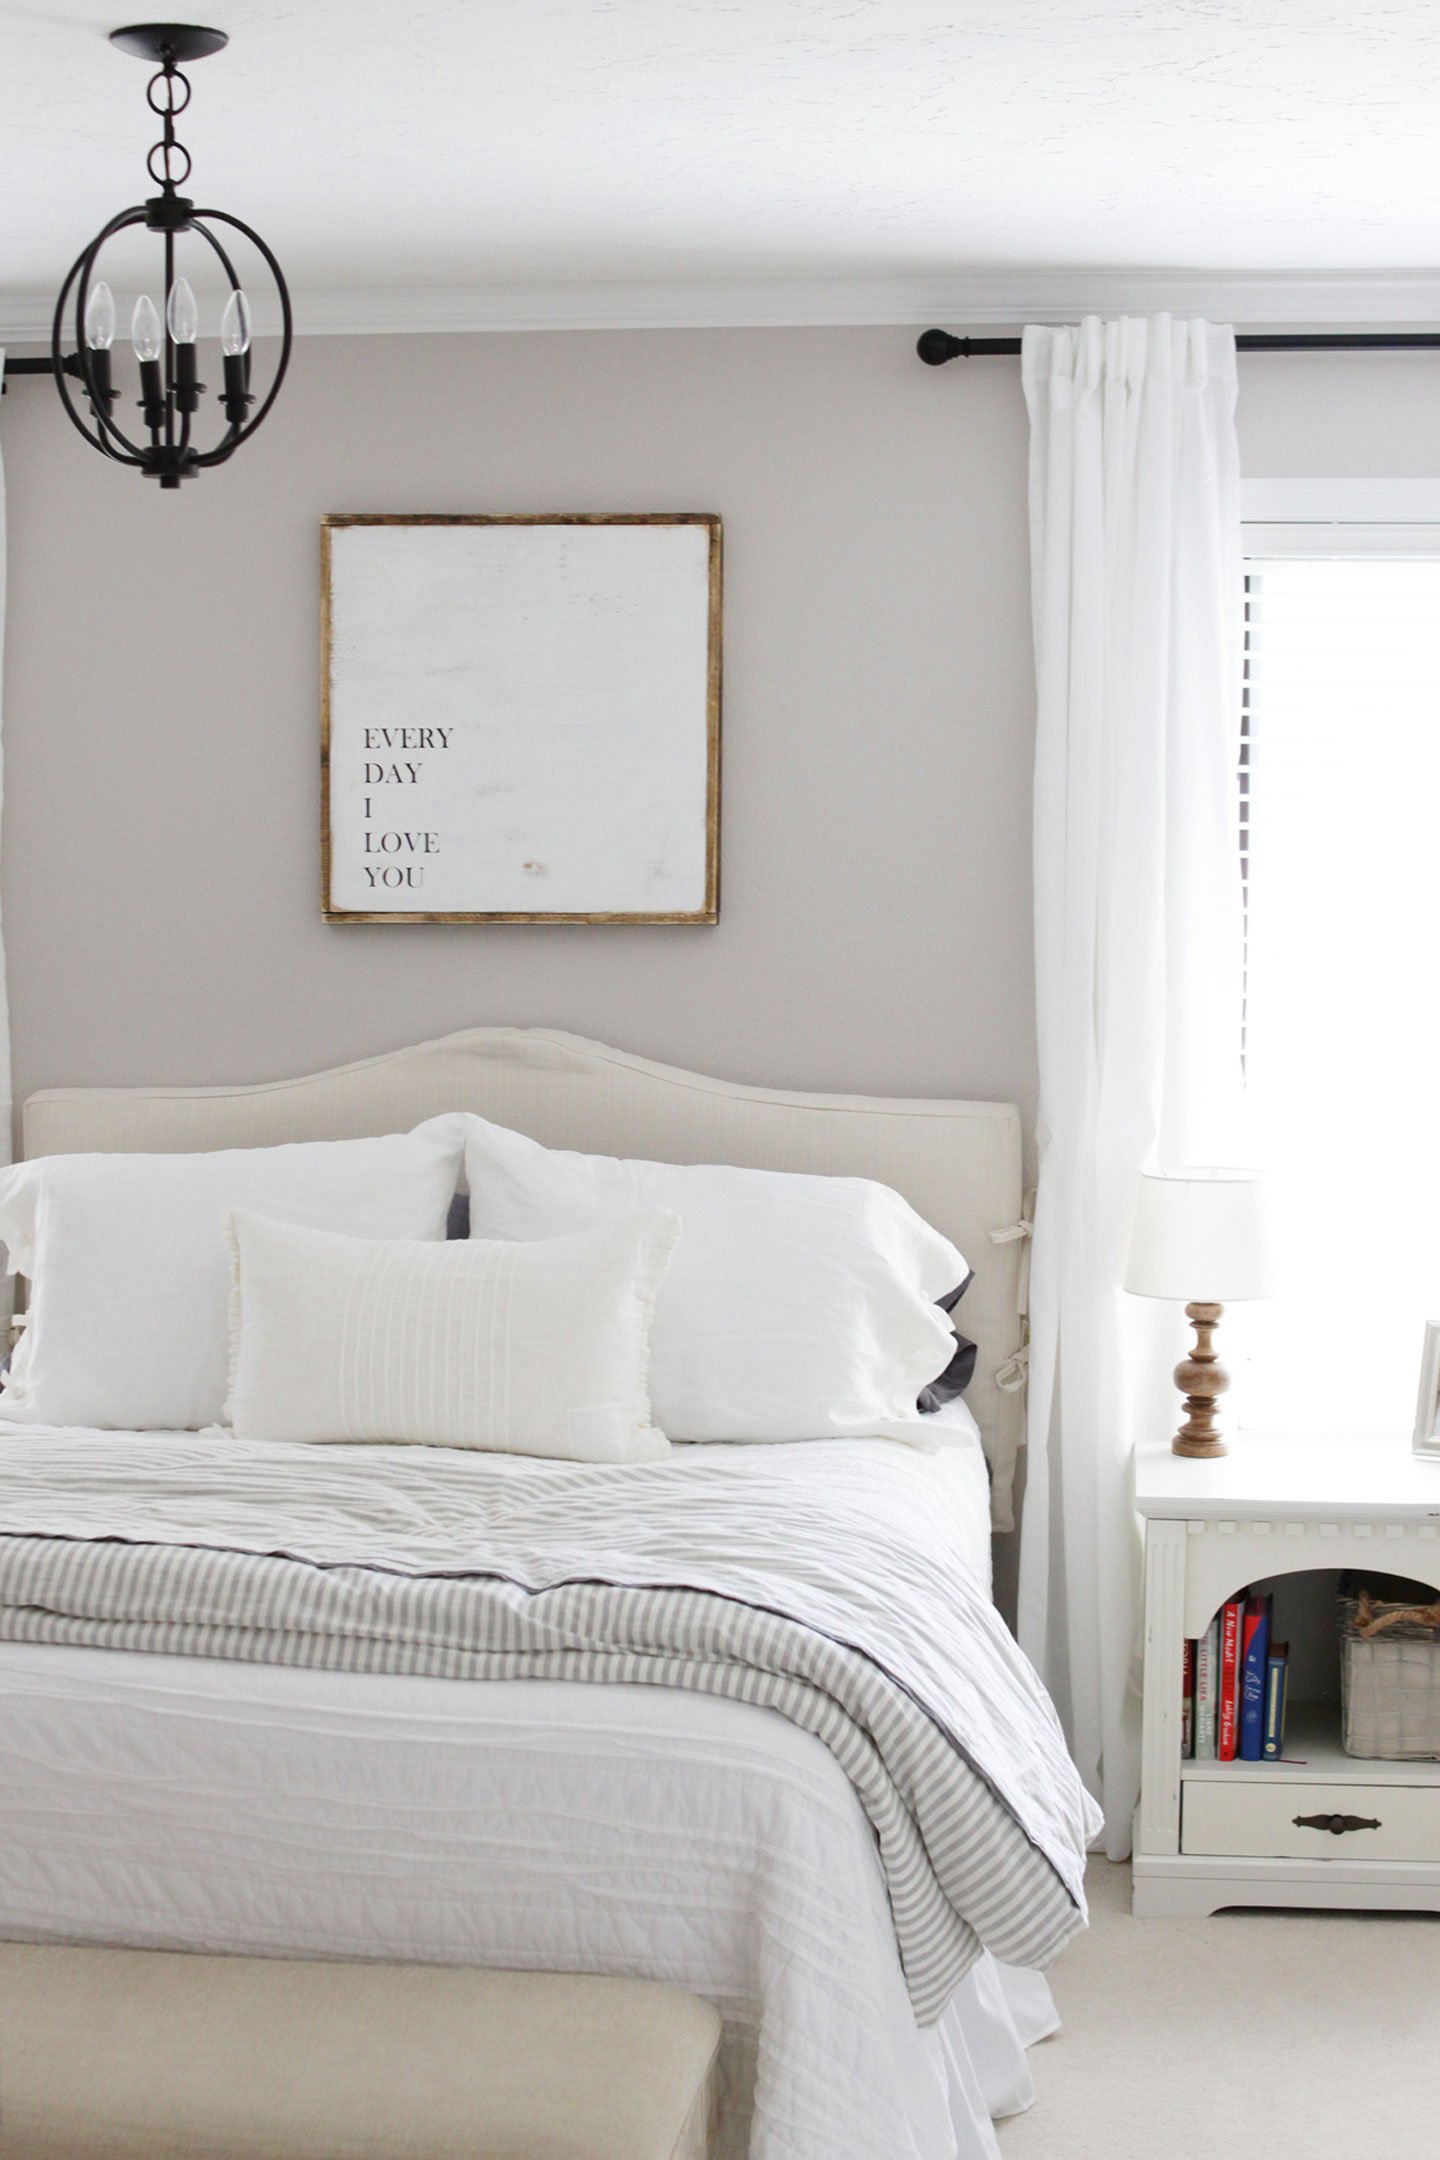 house project plans 2020 - modern farmhouse master bedroom - what karly said